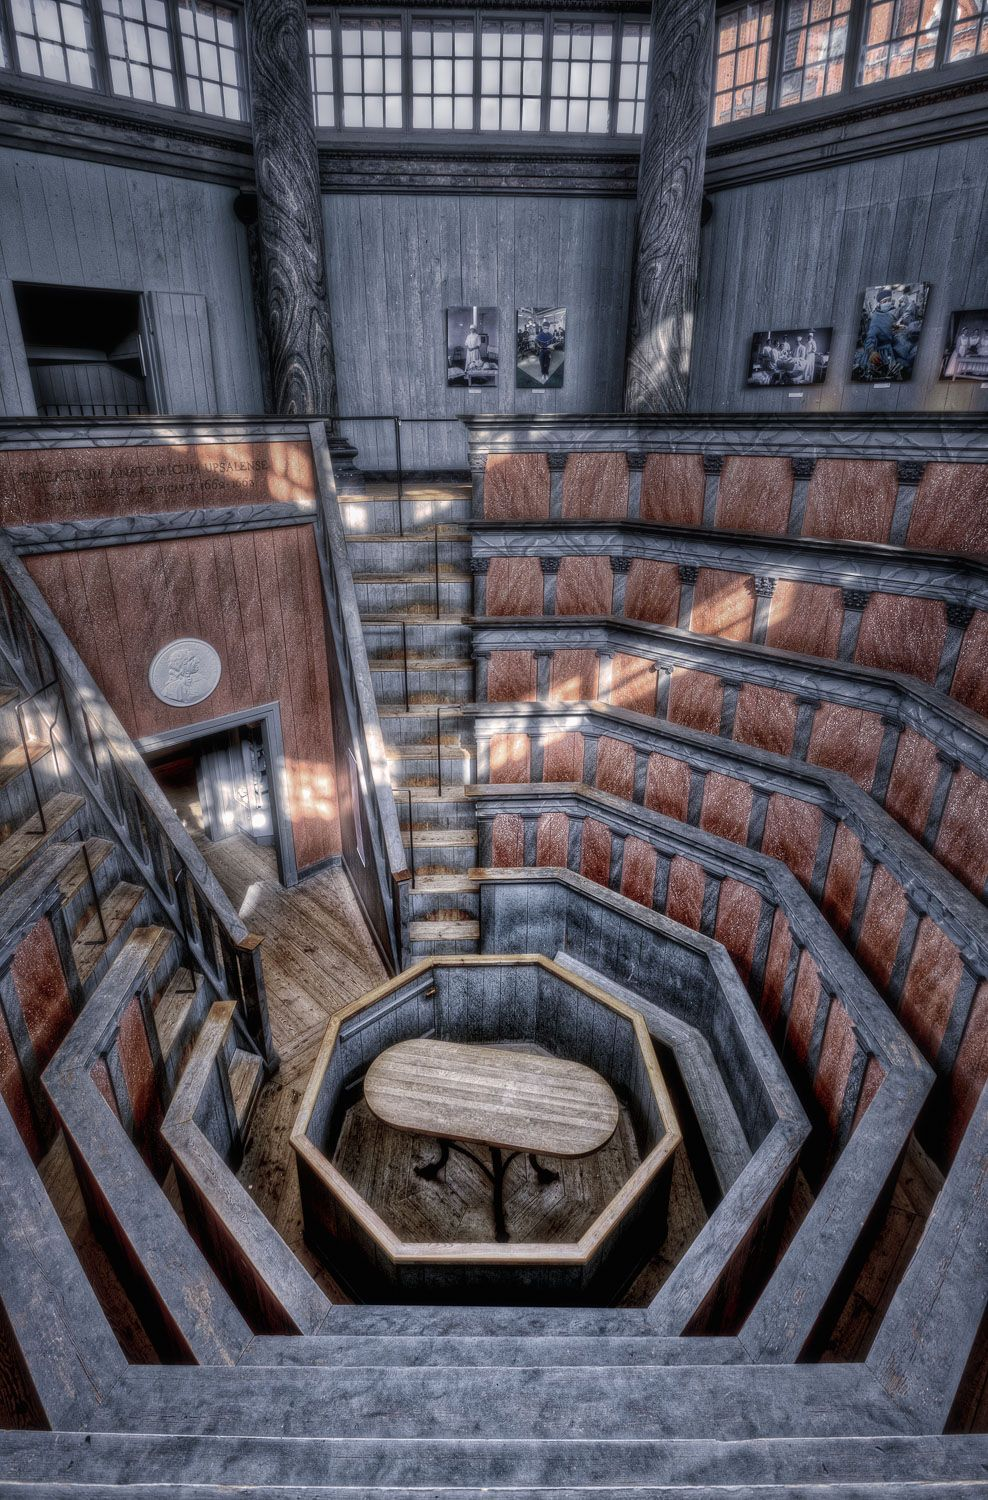 Uppsala Anatomical Theatre